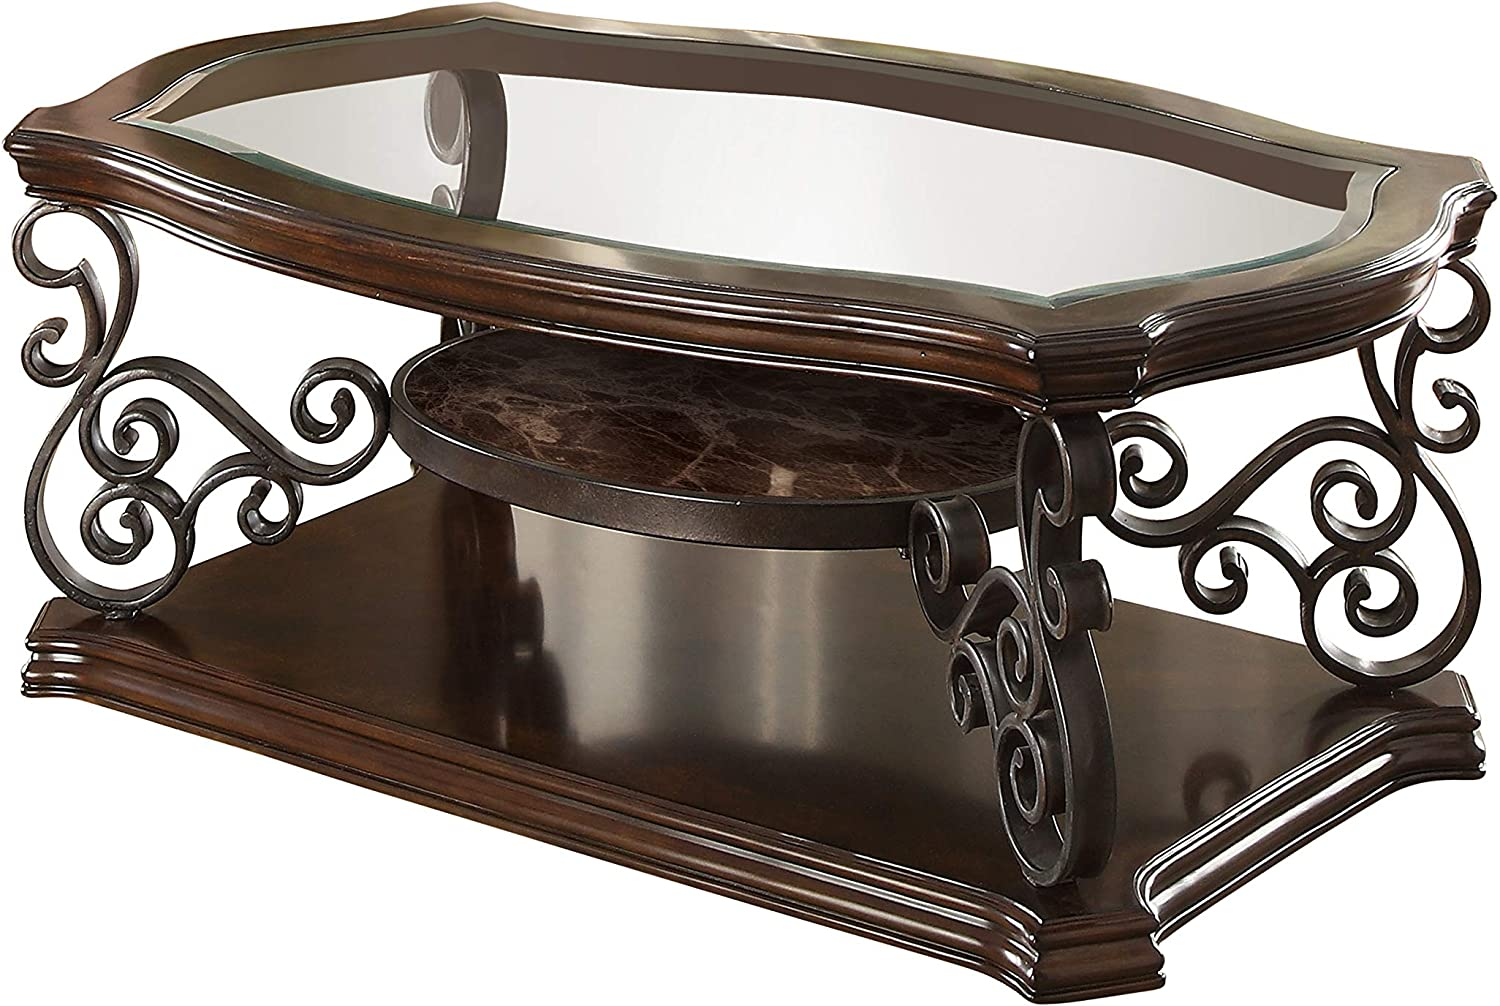 Coaster Home Furnishings Coffee Table with Tempered Glass Top Deep Merlot